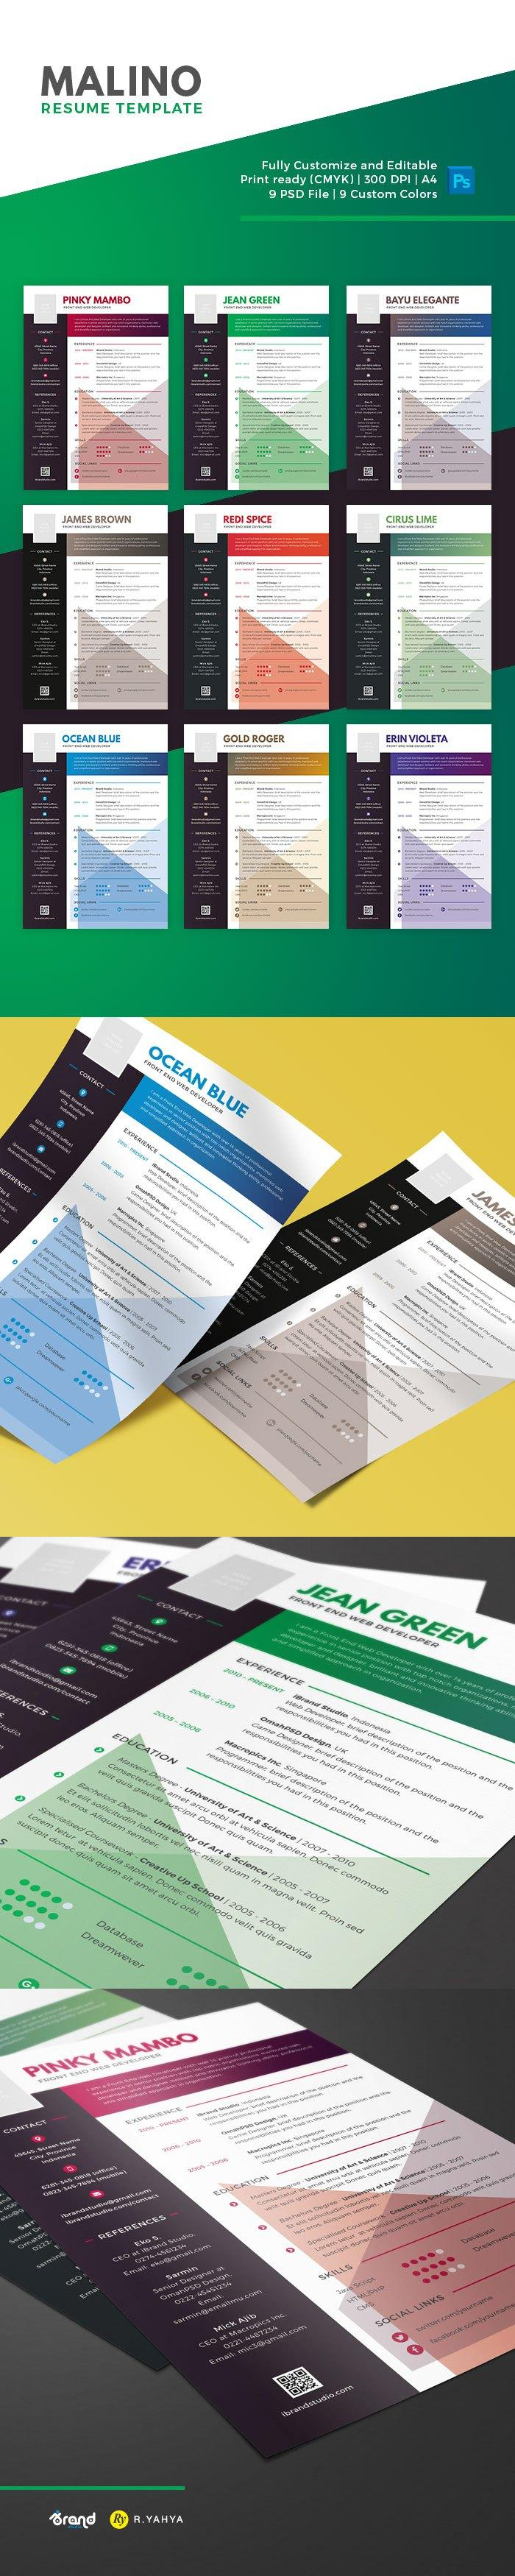 doc totally resume template totally resume totally resume templates totally resume template